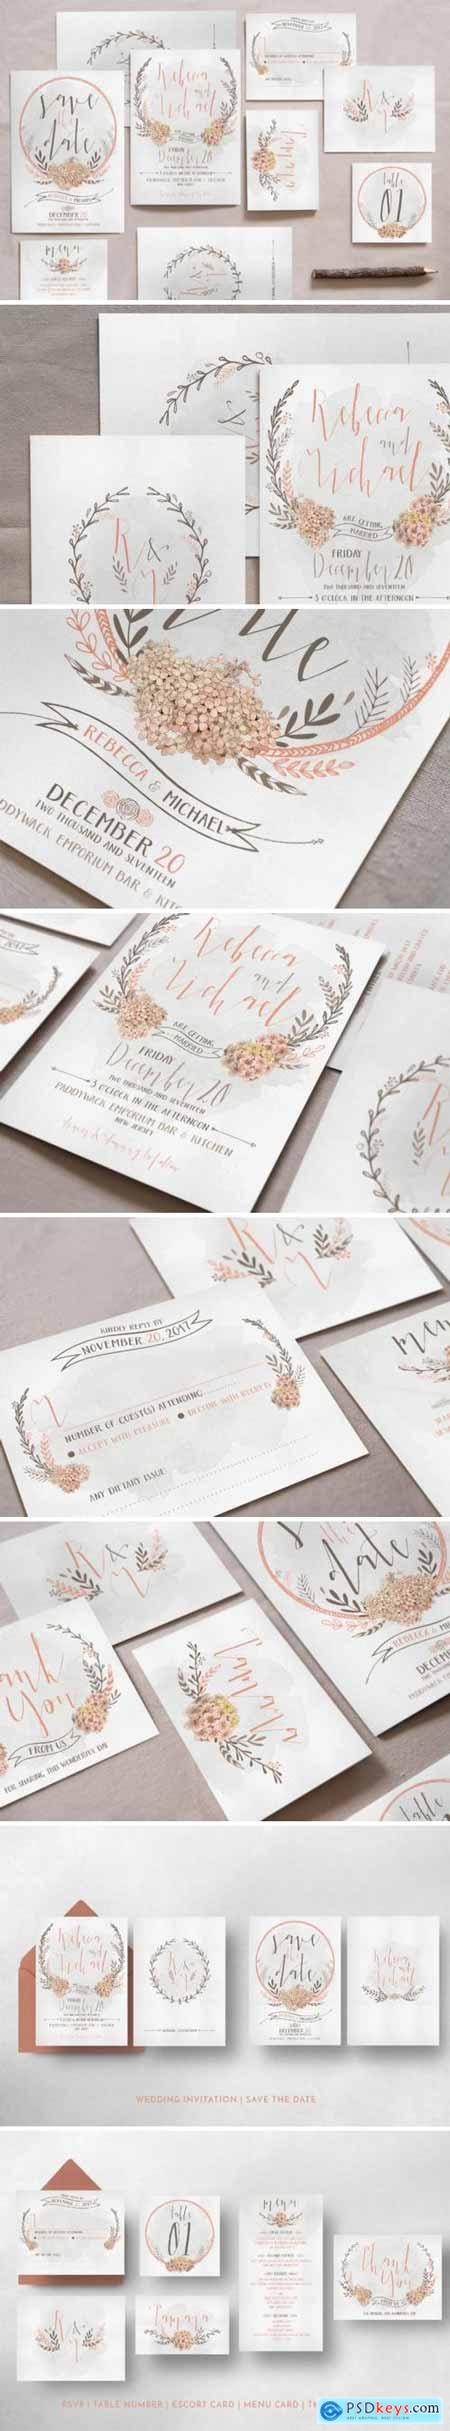 Creativemarket Wreath & Flower Wedding Invitation Suite 799852